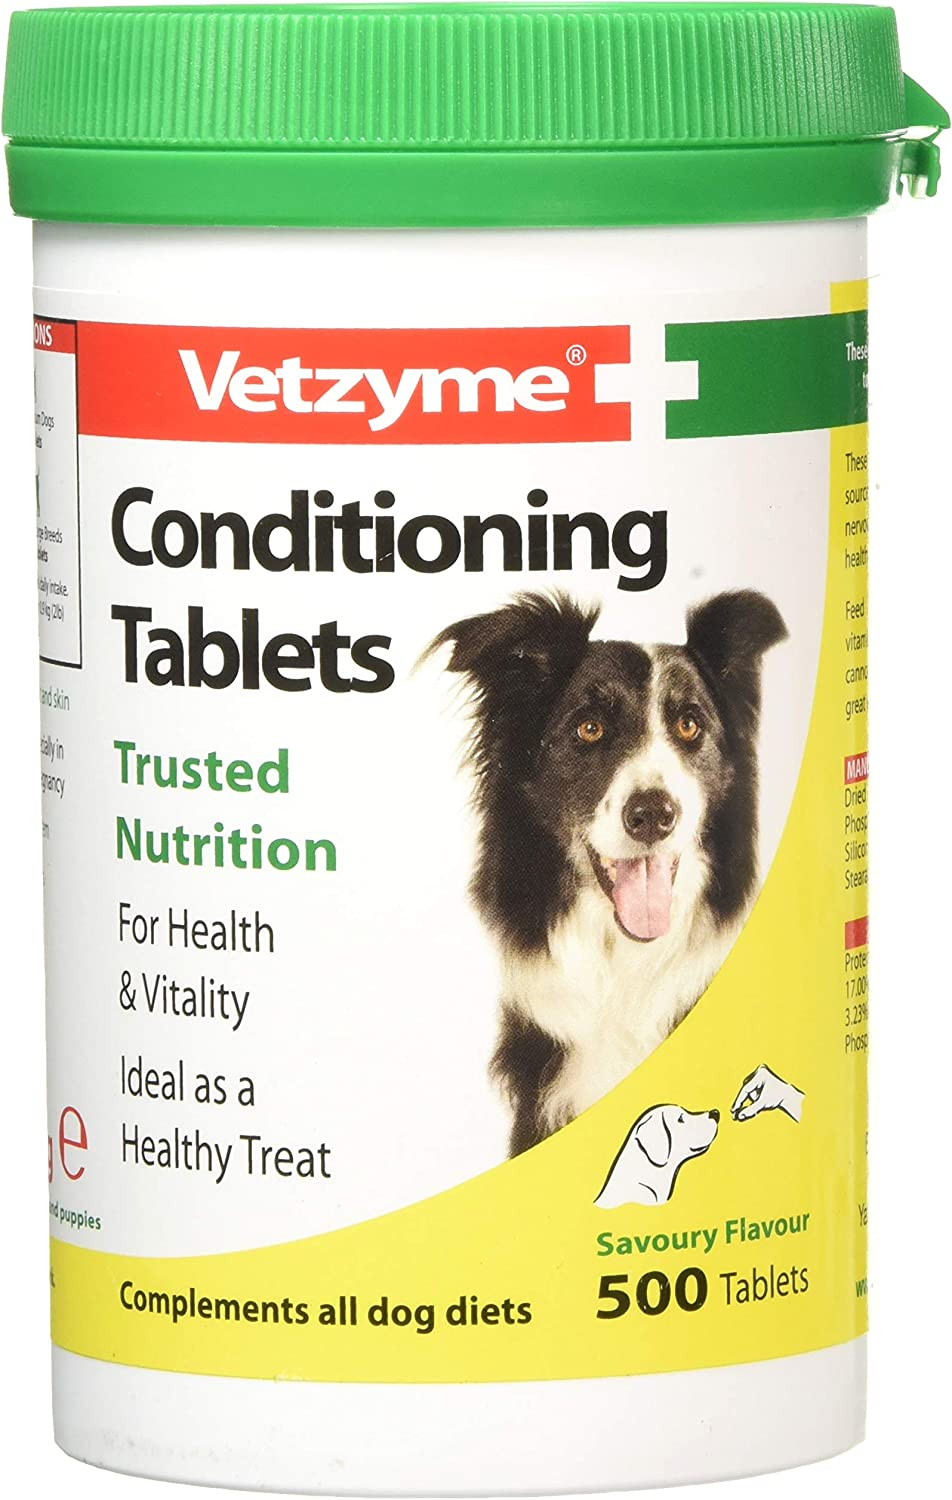 Vetzyme Conditioning Tablets, 500 Tablets